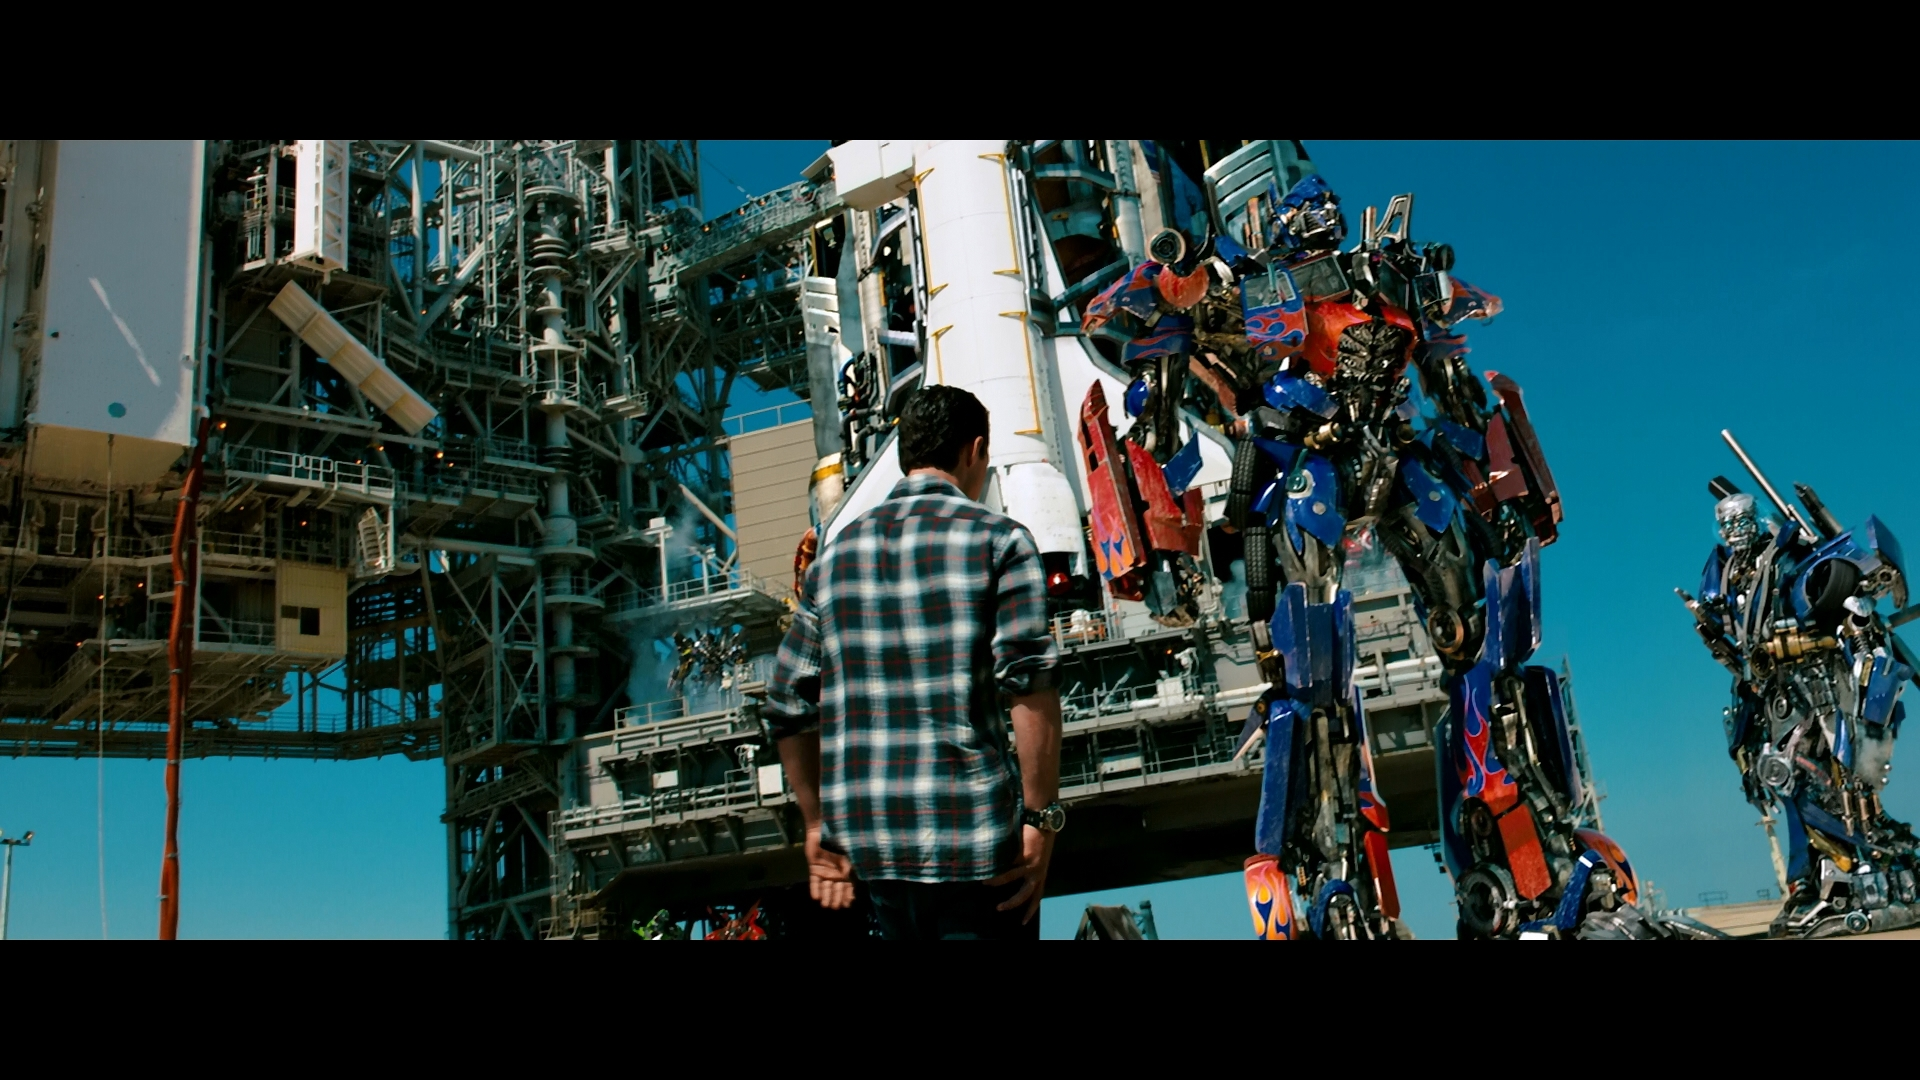 first look at mpm optimus prime? | page 165 | tfw2005 - the 2005